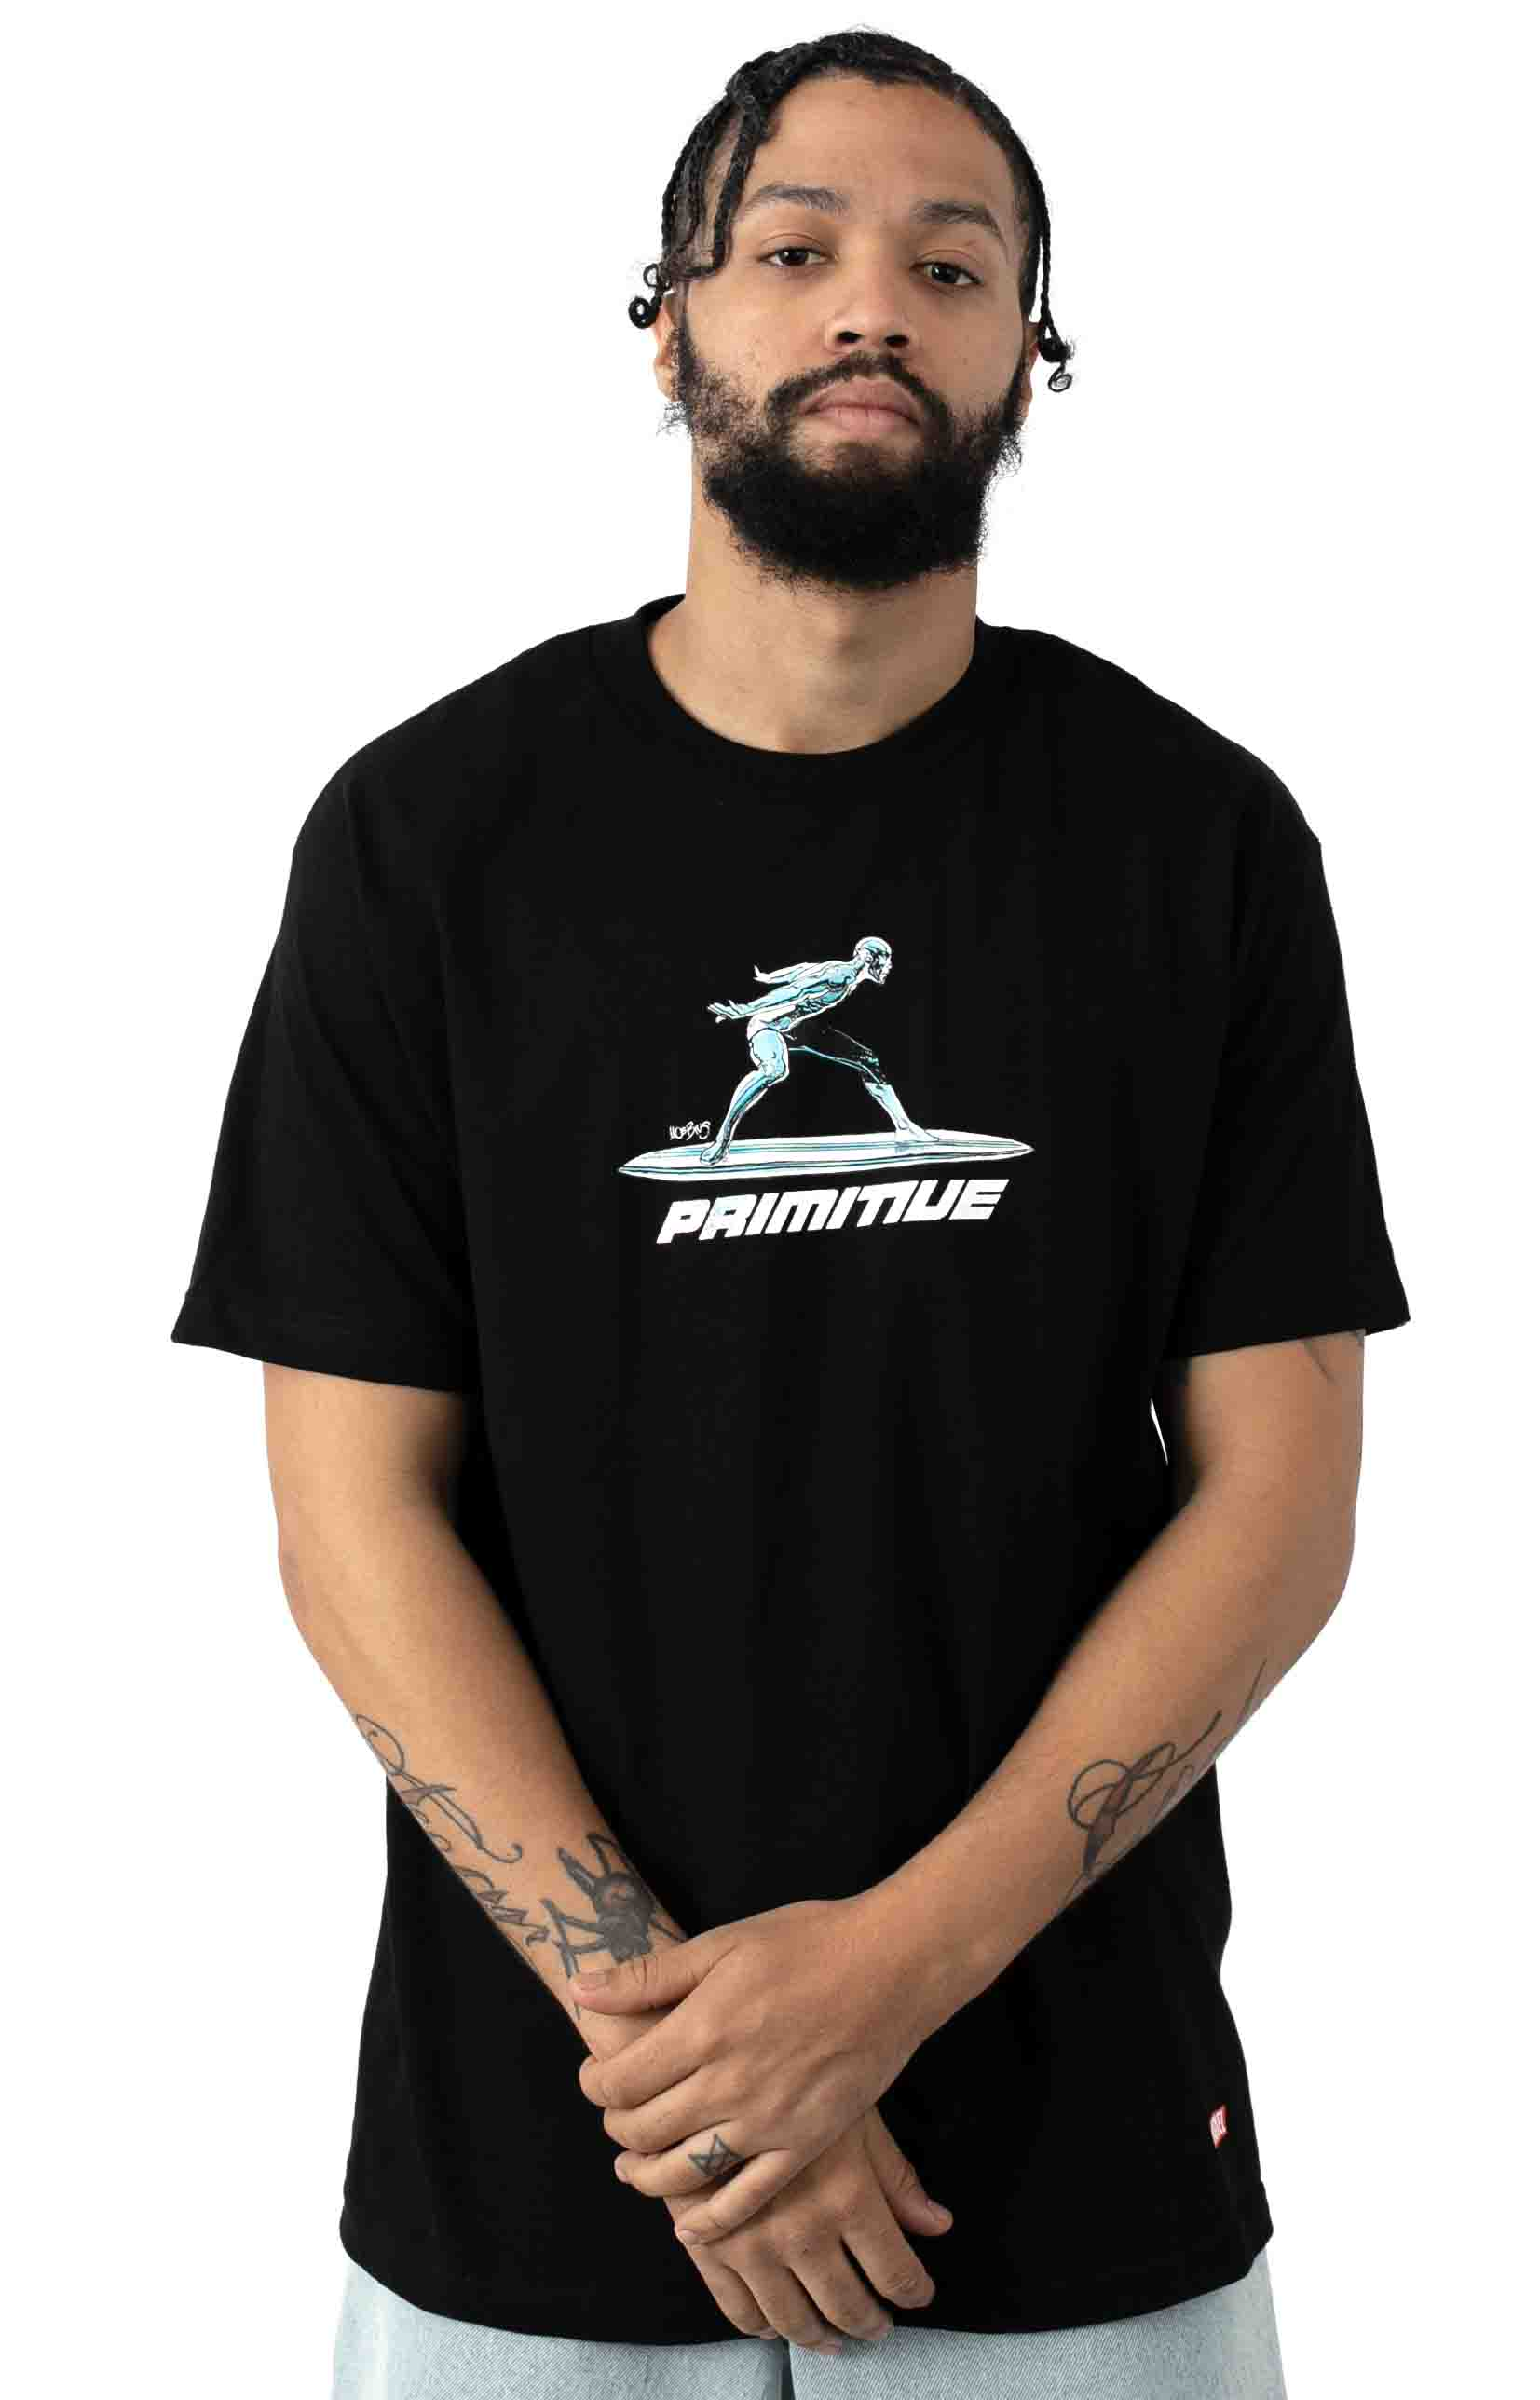 Silver Surfer T-Shirt - Black